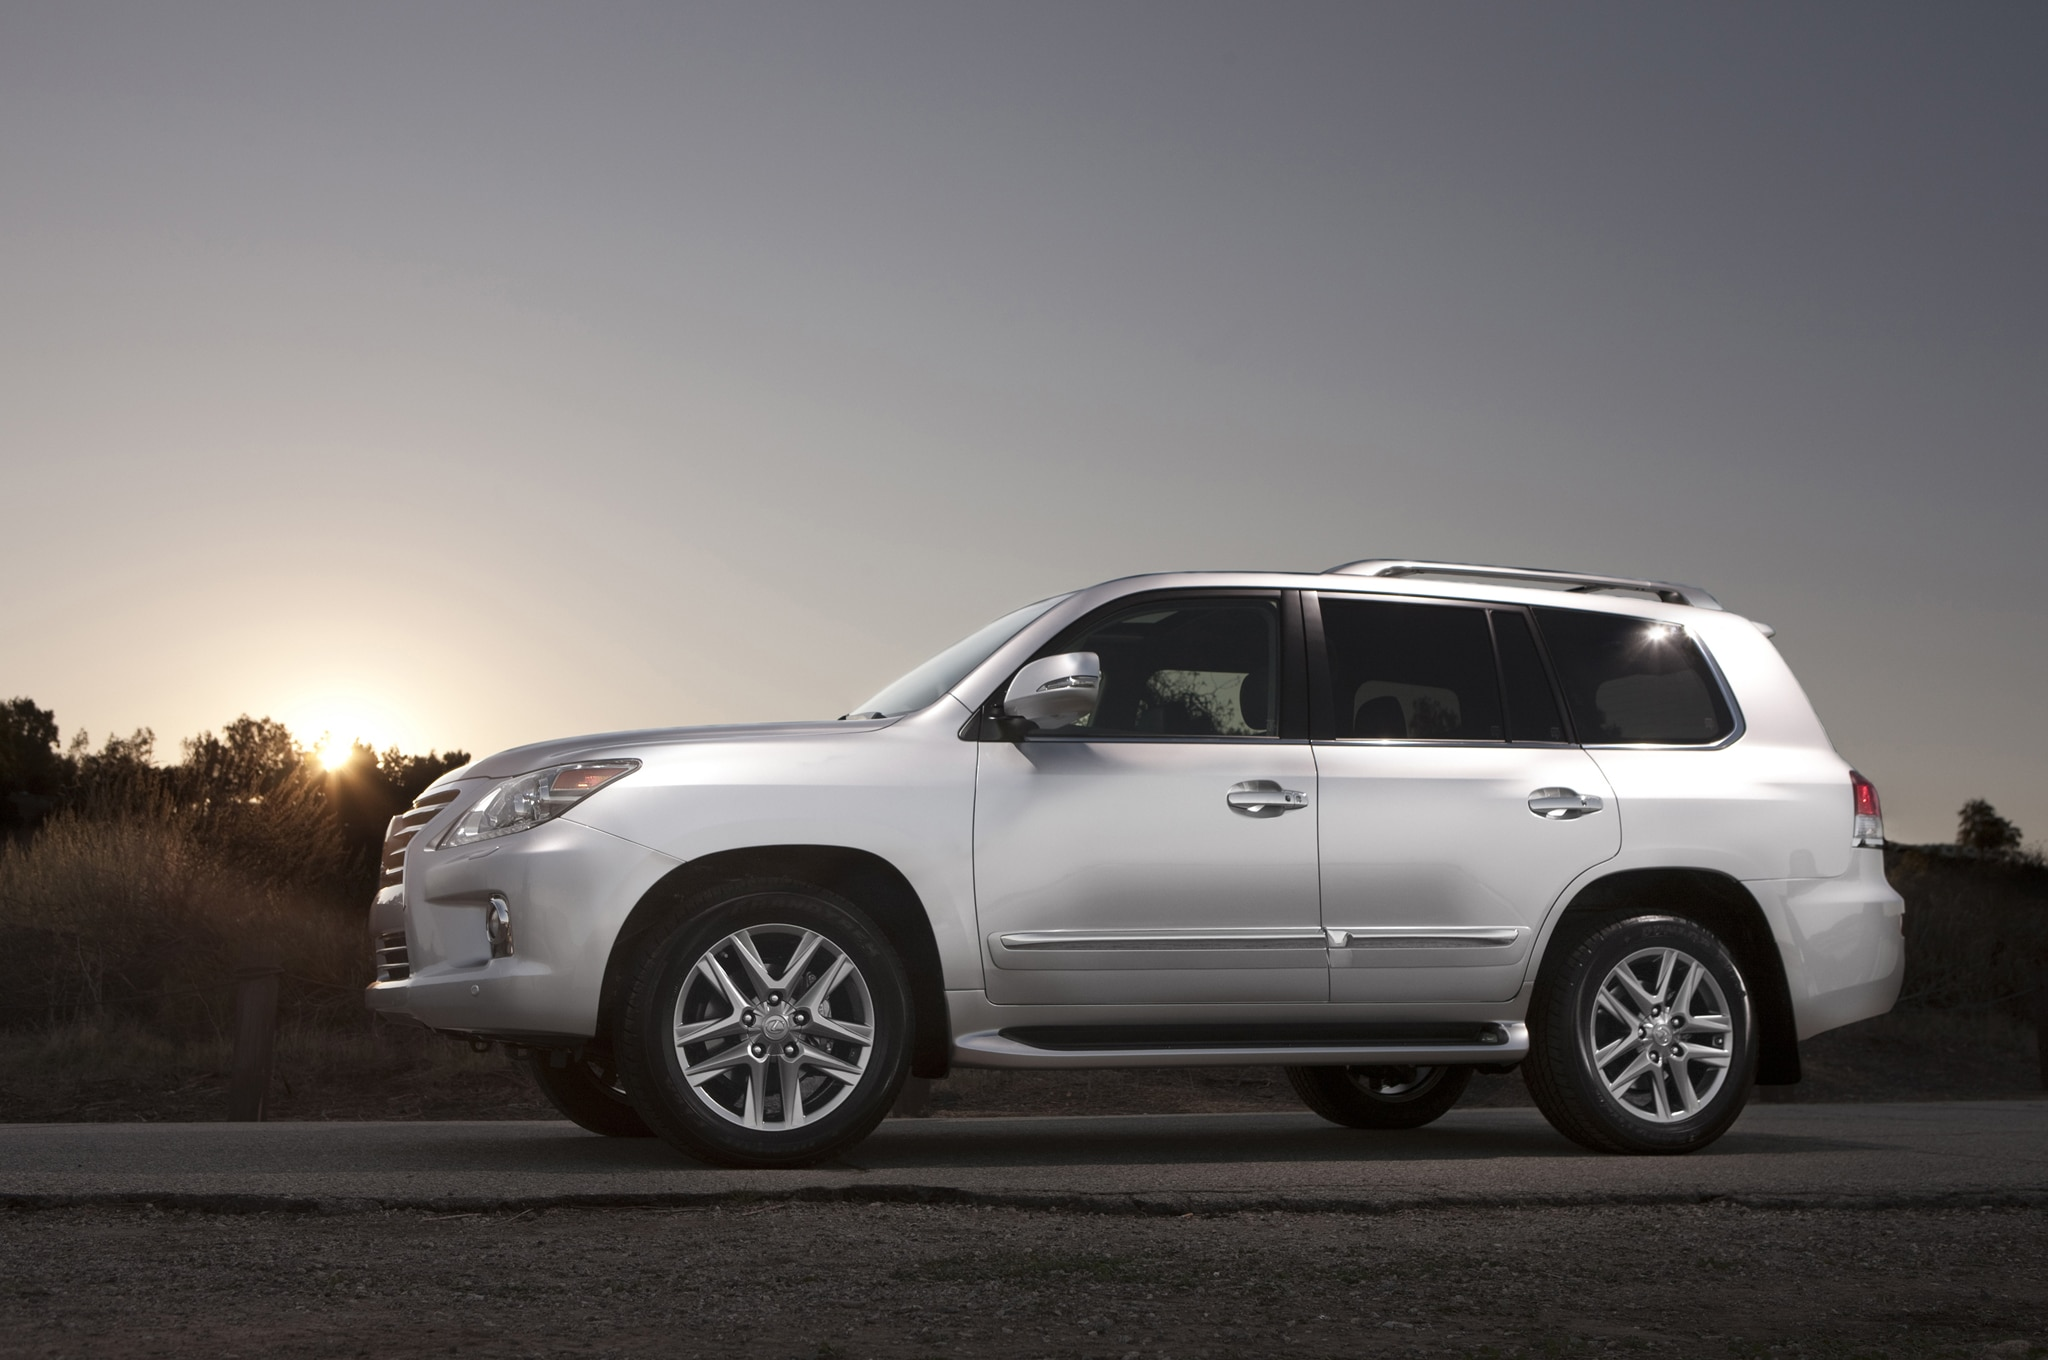 Lexus lx570 photo - 10